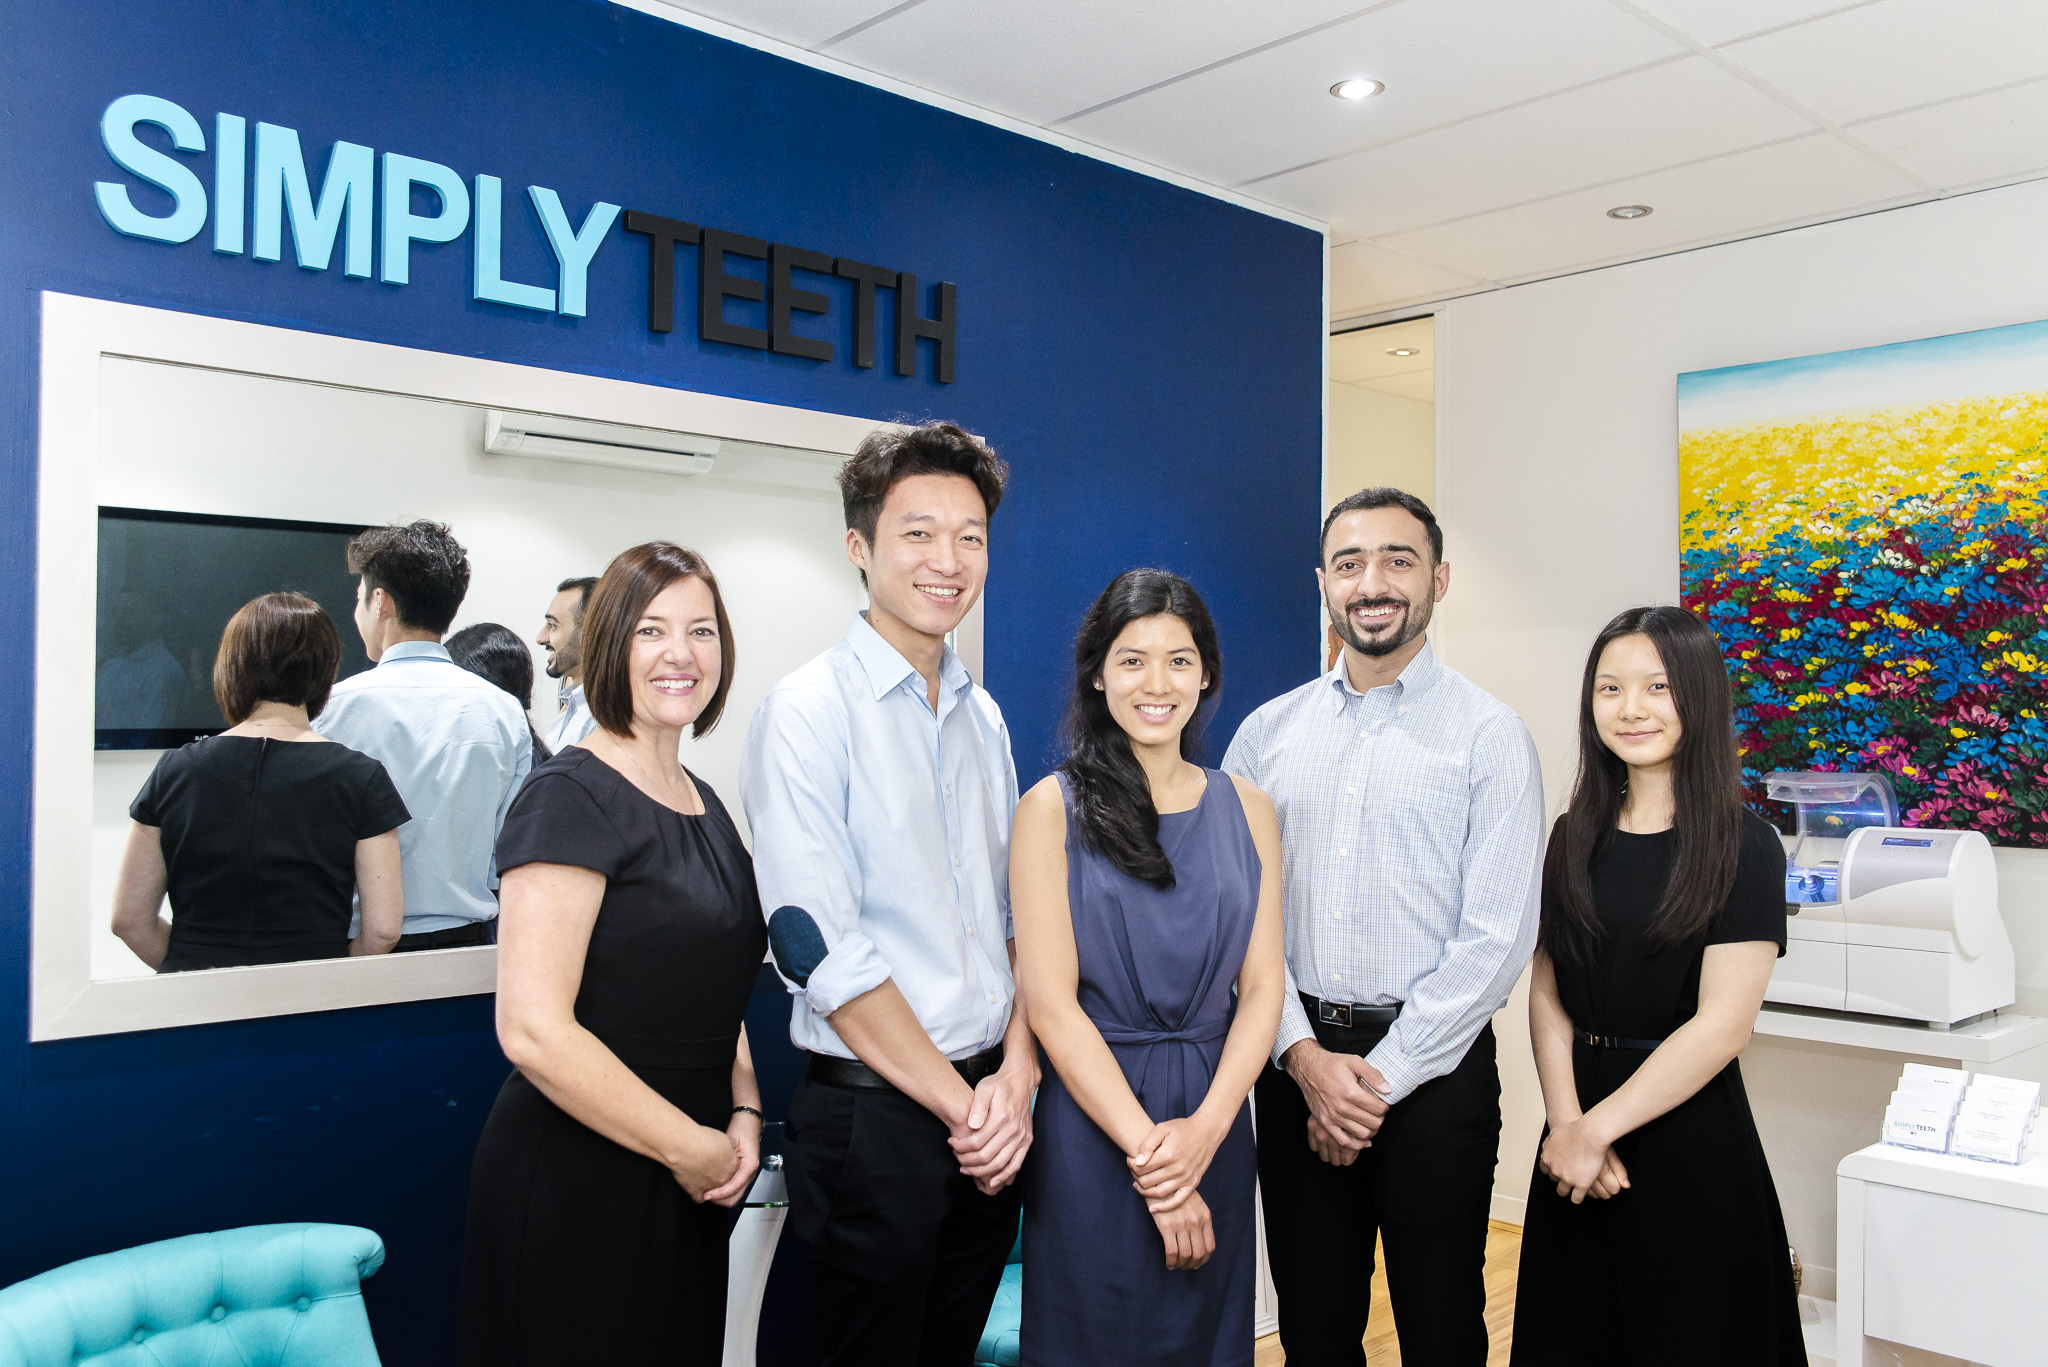 Staff at Simply Teeth